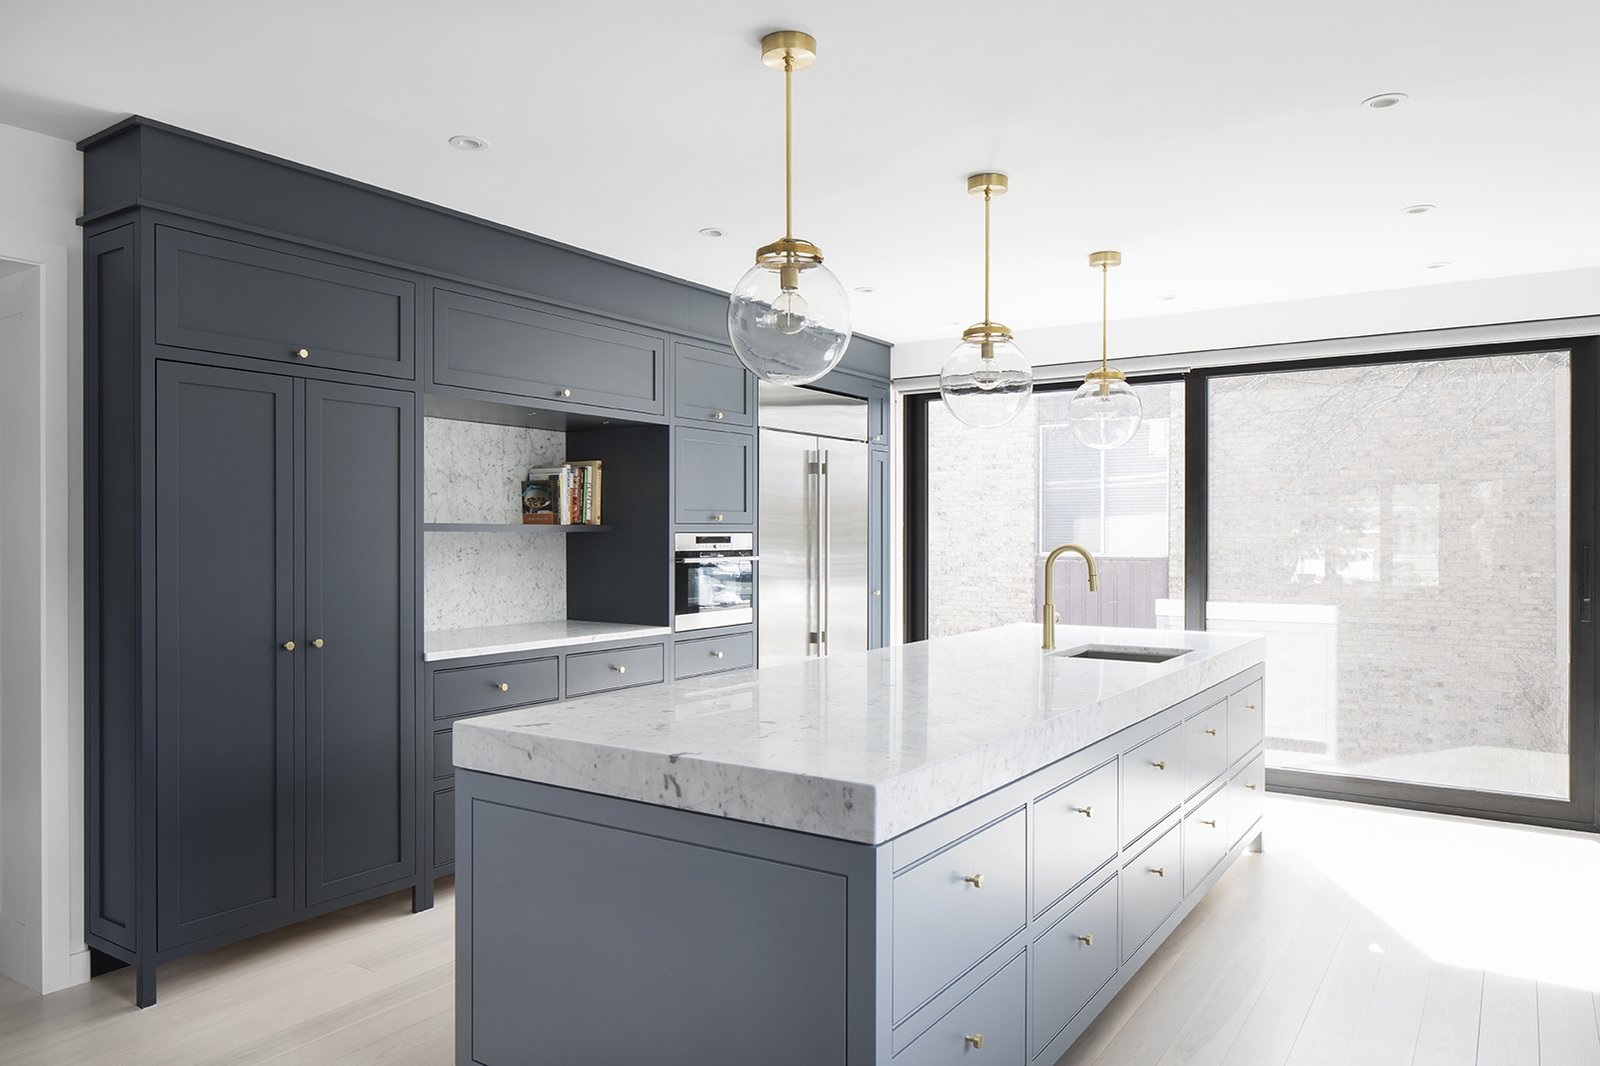 Kitchen, Refrigerator, Marble Counter, Wall Oven, Pendant Lighting, Recessed Lighting, Light Hardwood Floor, Undermount Sink, Colorful Cabinet, and Stone Slab Backsplashe  Hampstead House by RobitailleCurtis